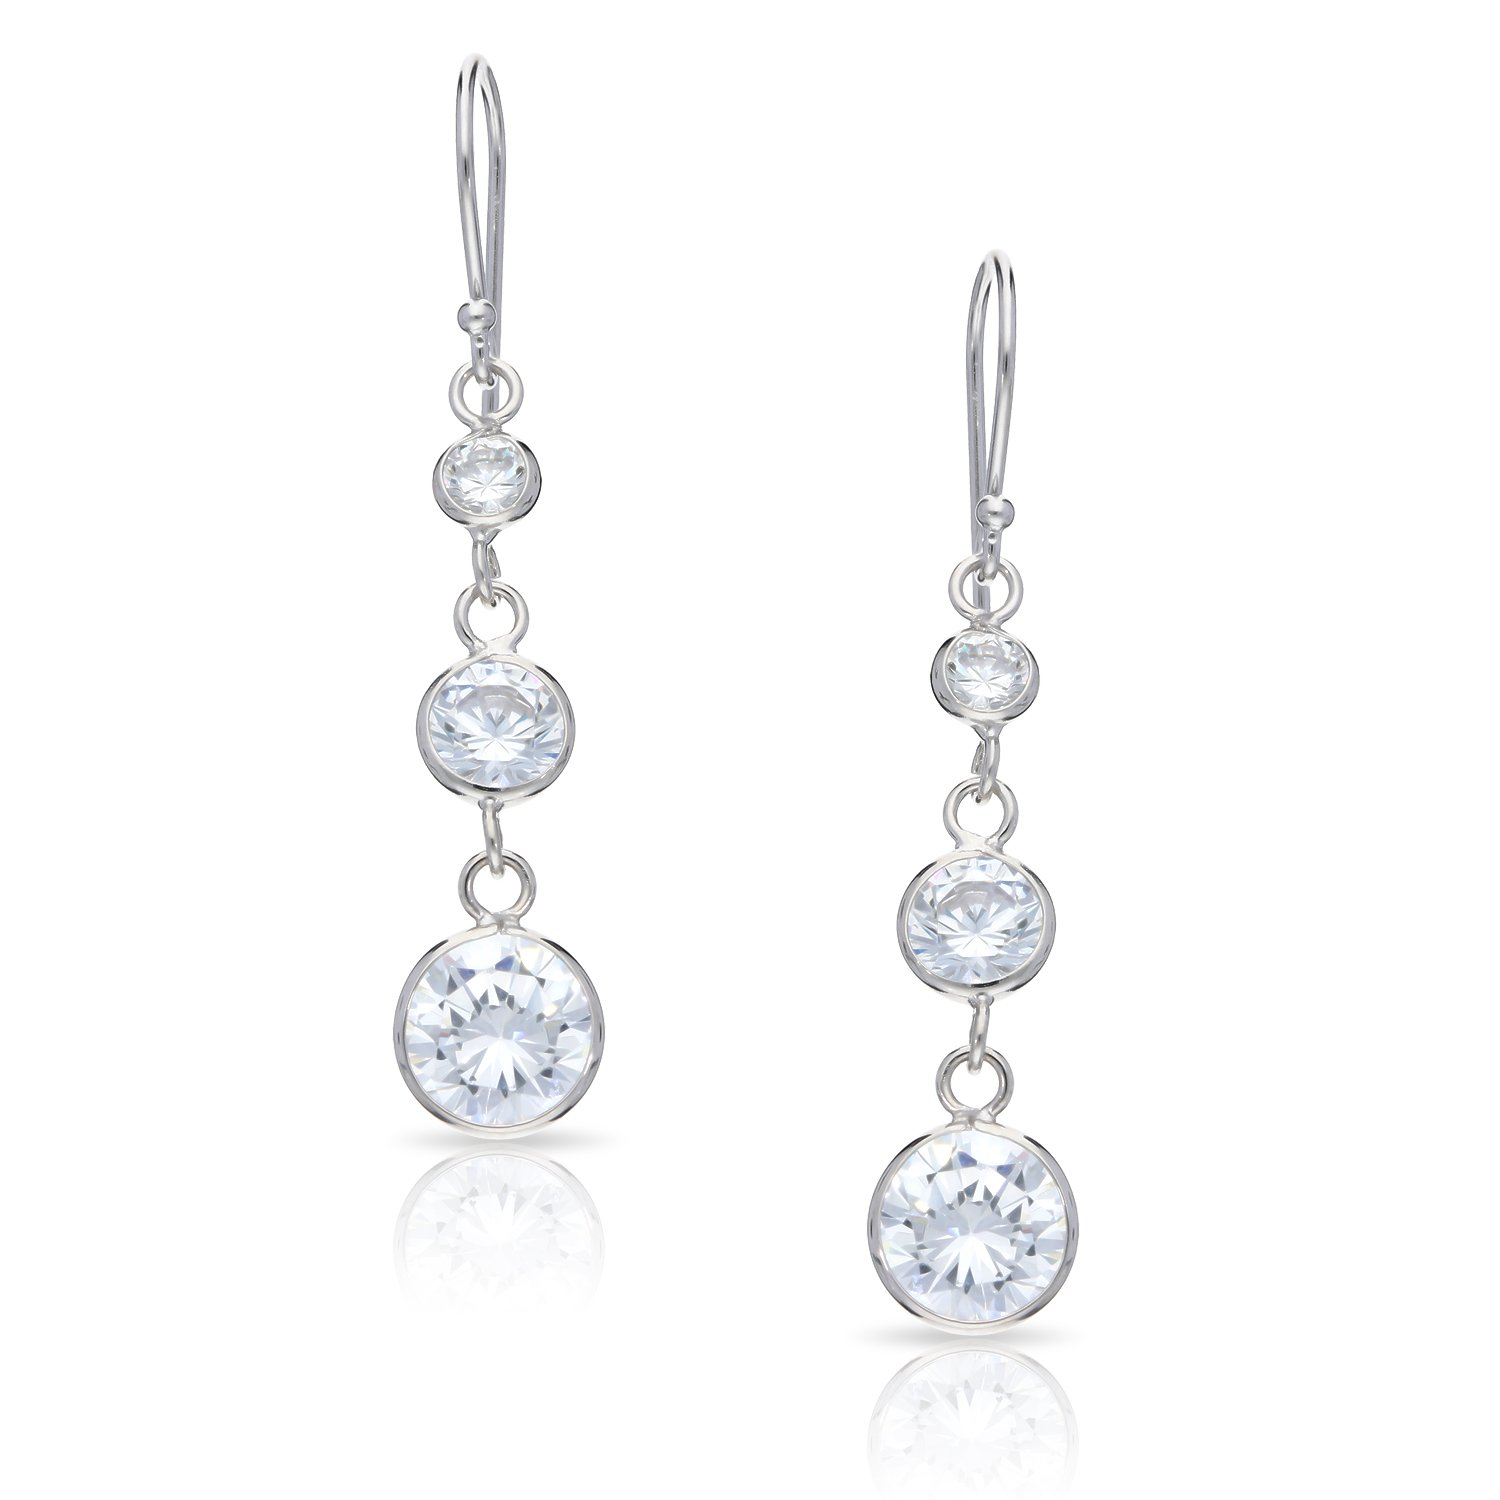 Round Crystal Triple Drop Earrings Never Rust 925 Sterling Silver Natural and Hypoallergenic Hooks For Women and Girls with Free Breathtaking Gift Box for Special Moments of Love By BLING BIJOUX